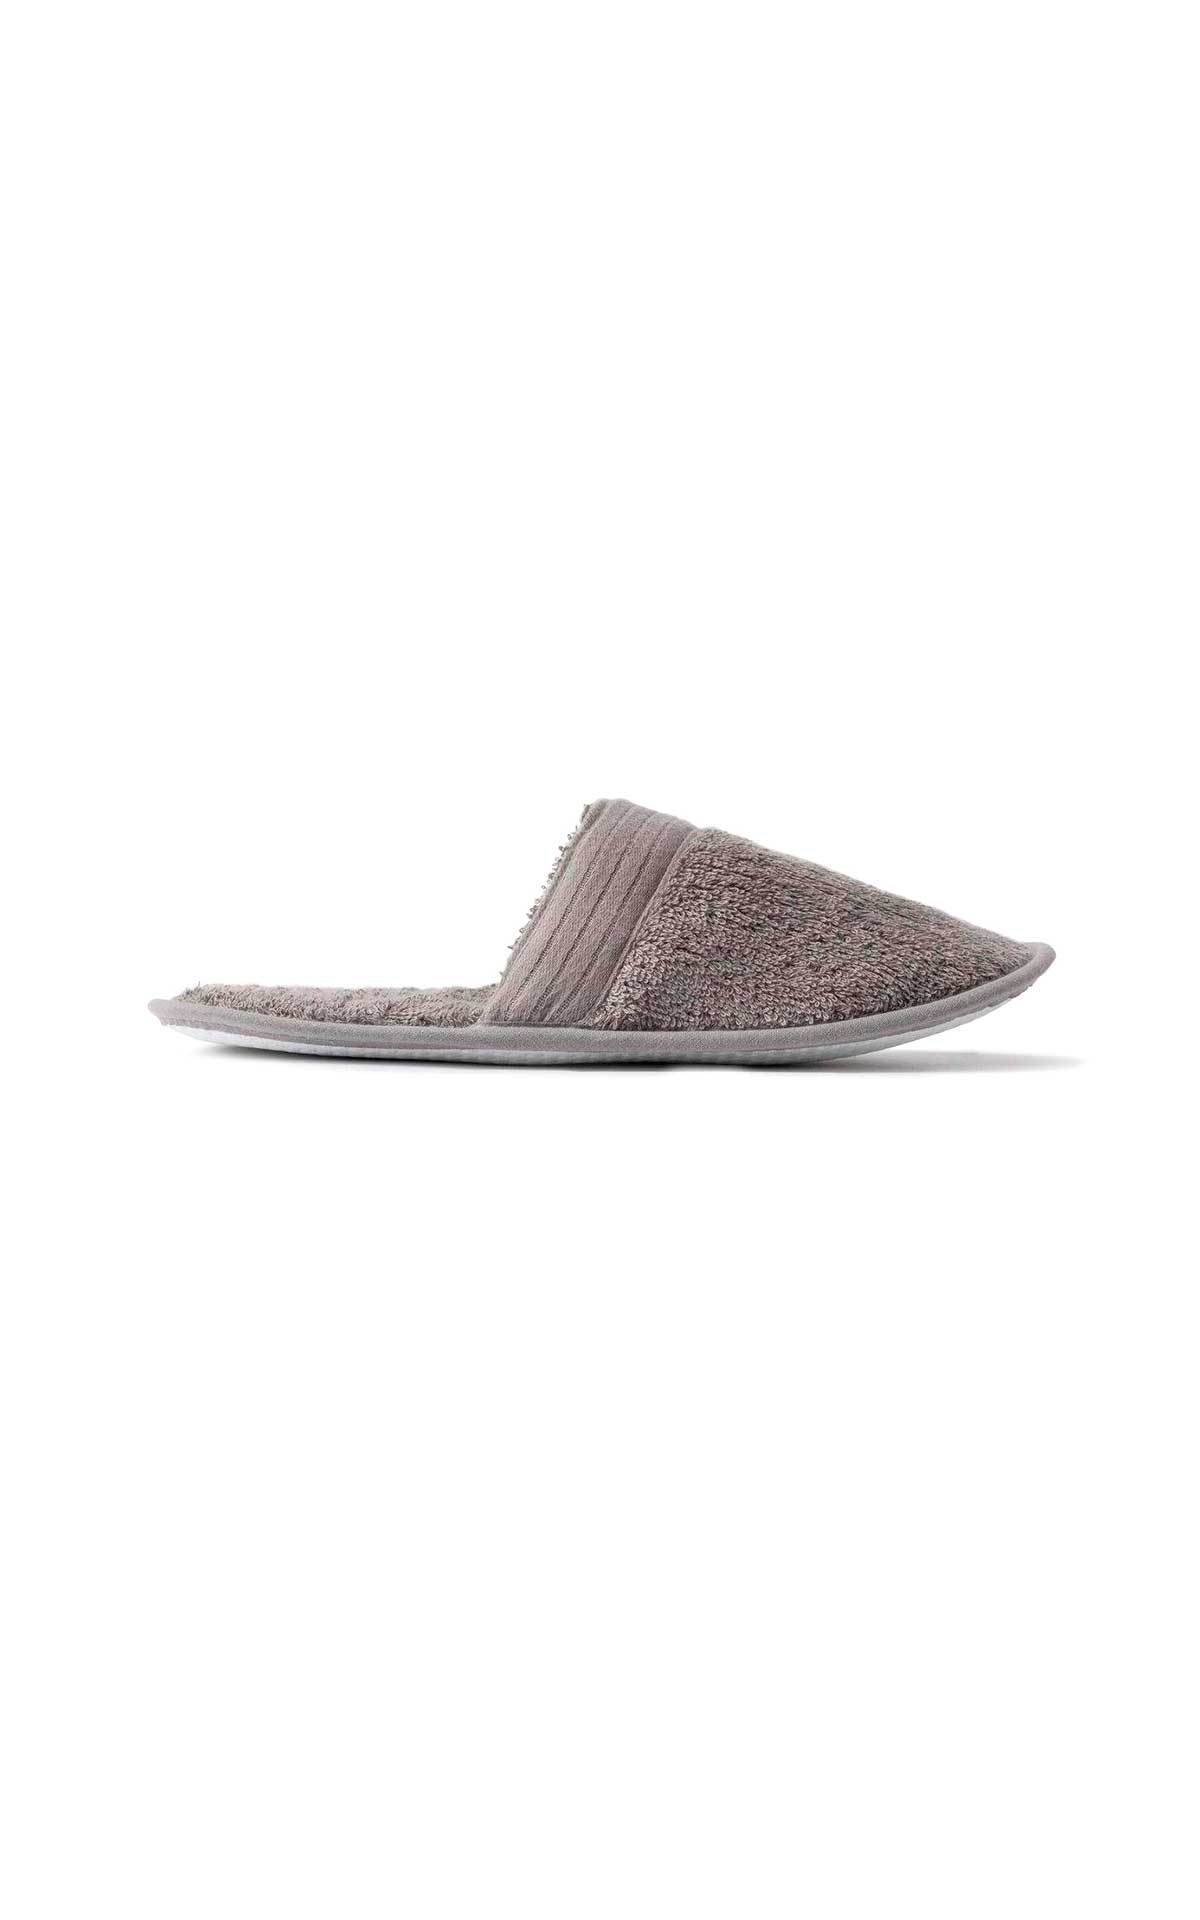 Grey slipper Textura